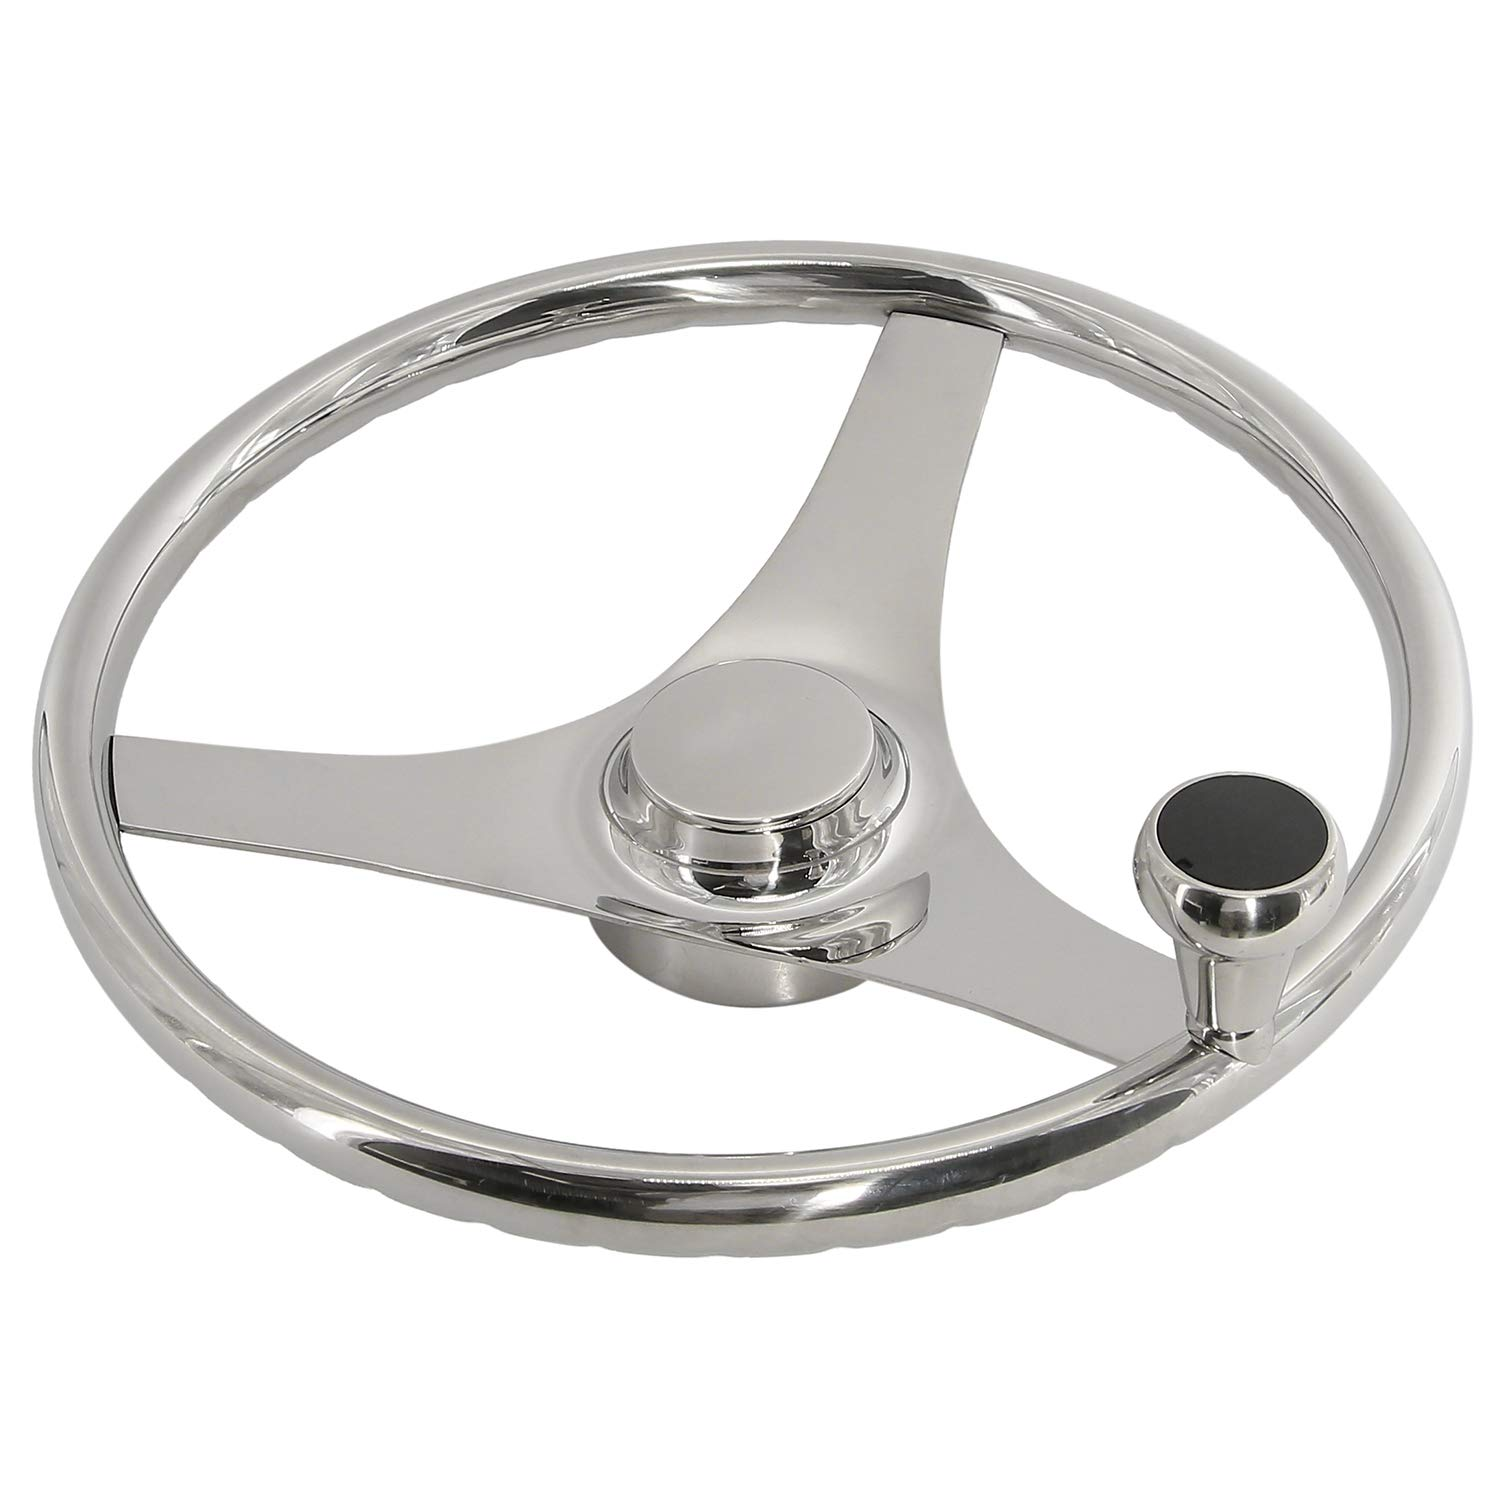 HYDDNice 3 Spoke Stainless Steel 13-1/2'' Boat Steering Wheel with Finger Grip Keyed to fit Standard 3/4'' Taper Shafts (13-1/2'') by HYDDNice